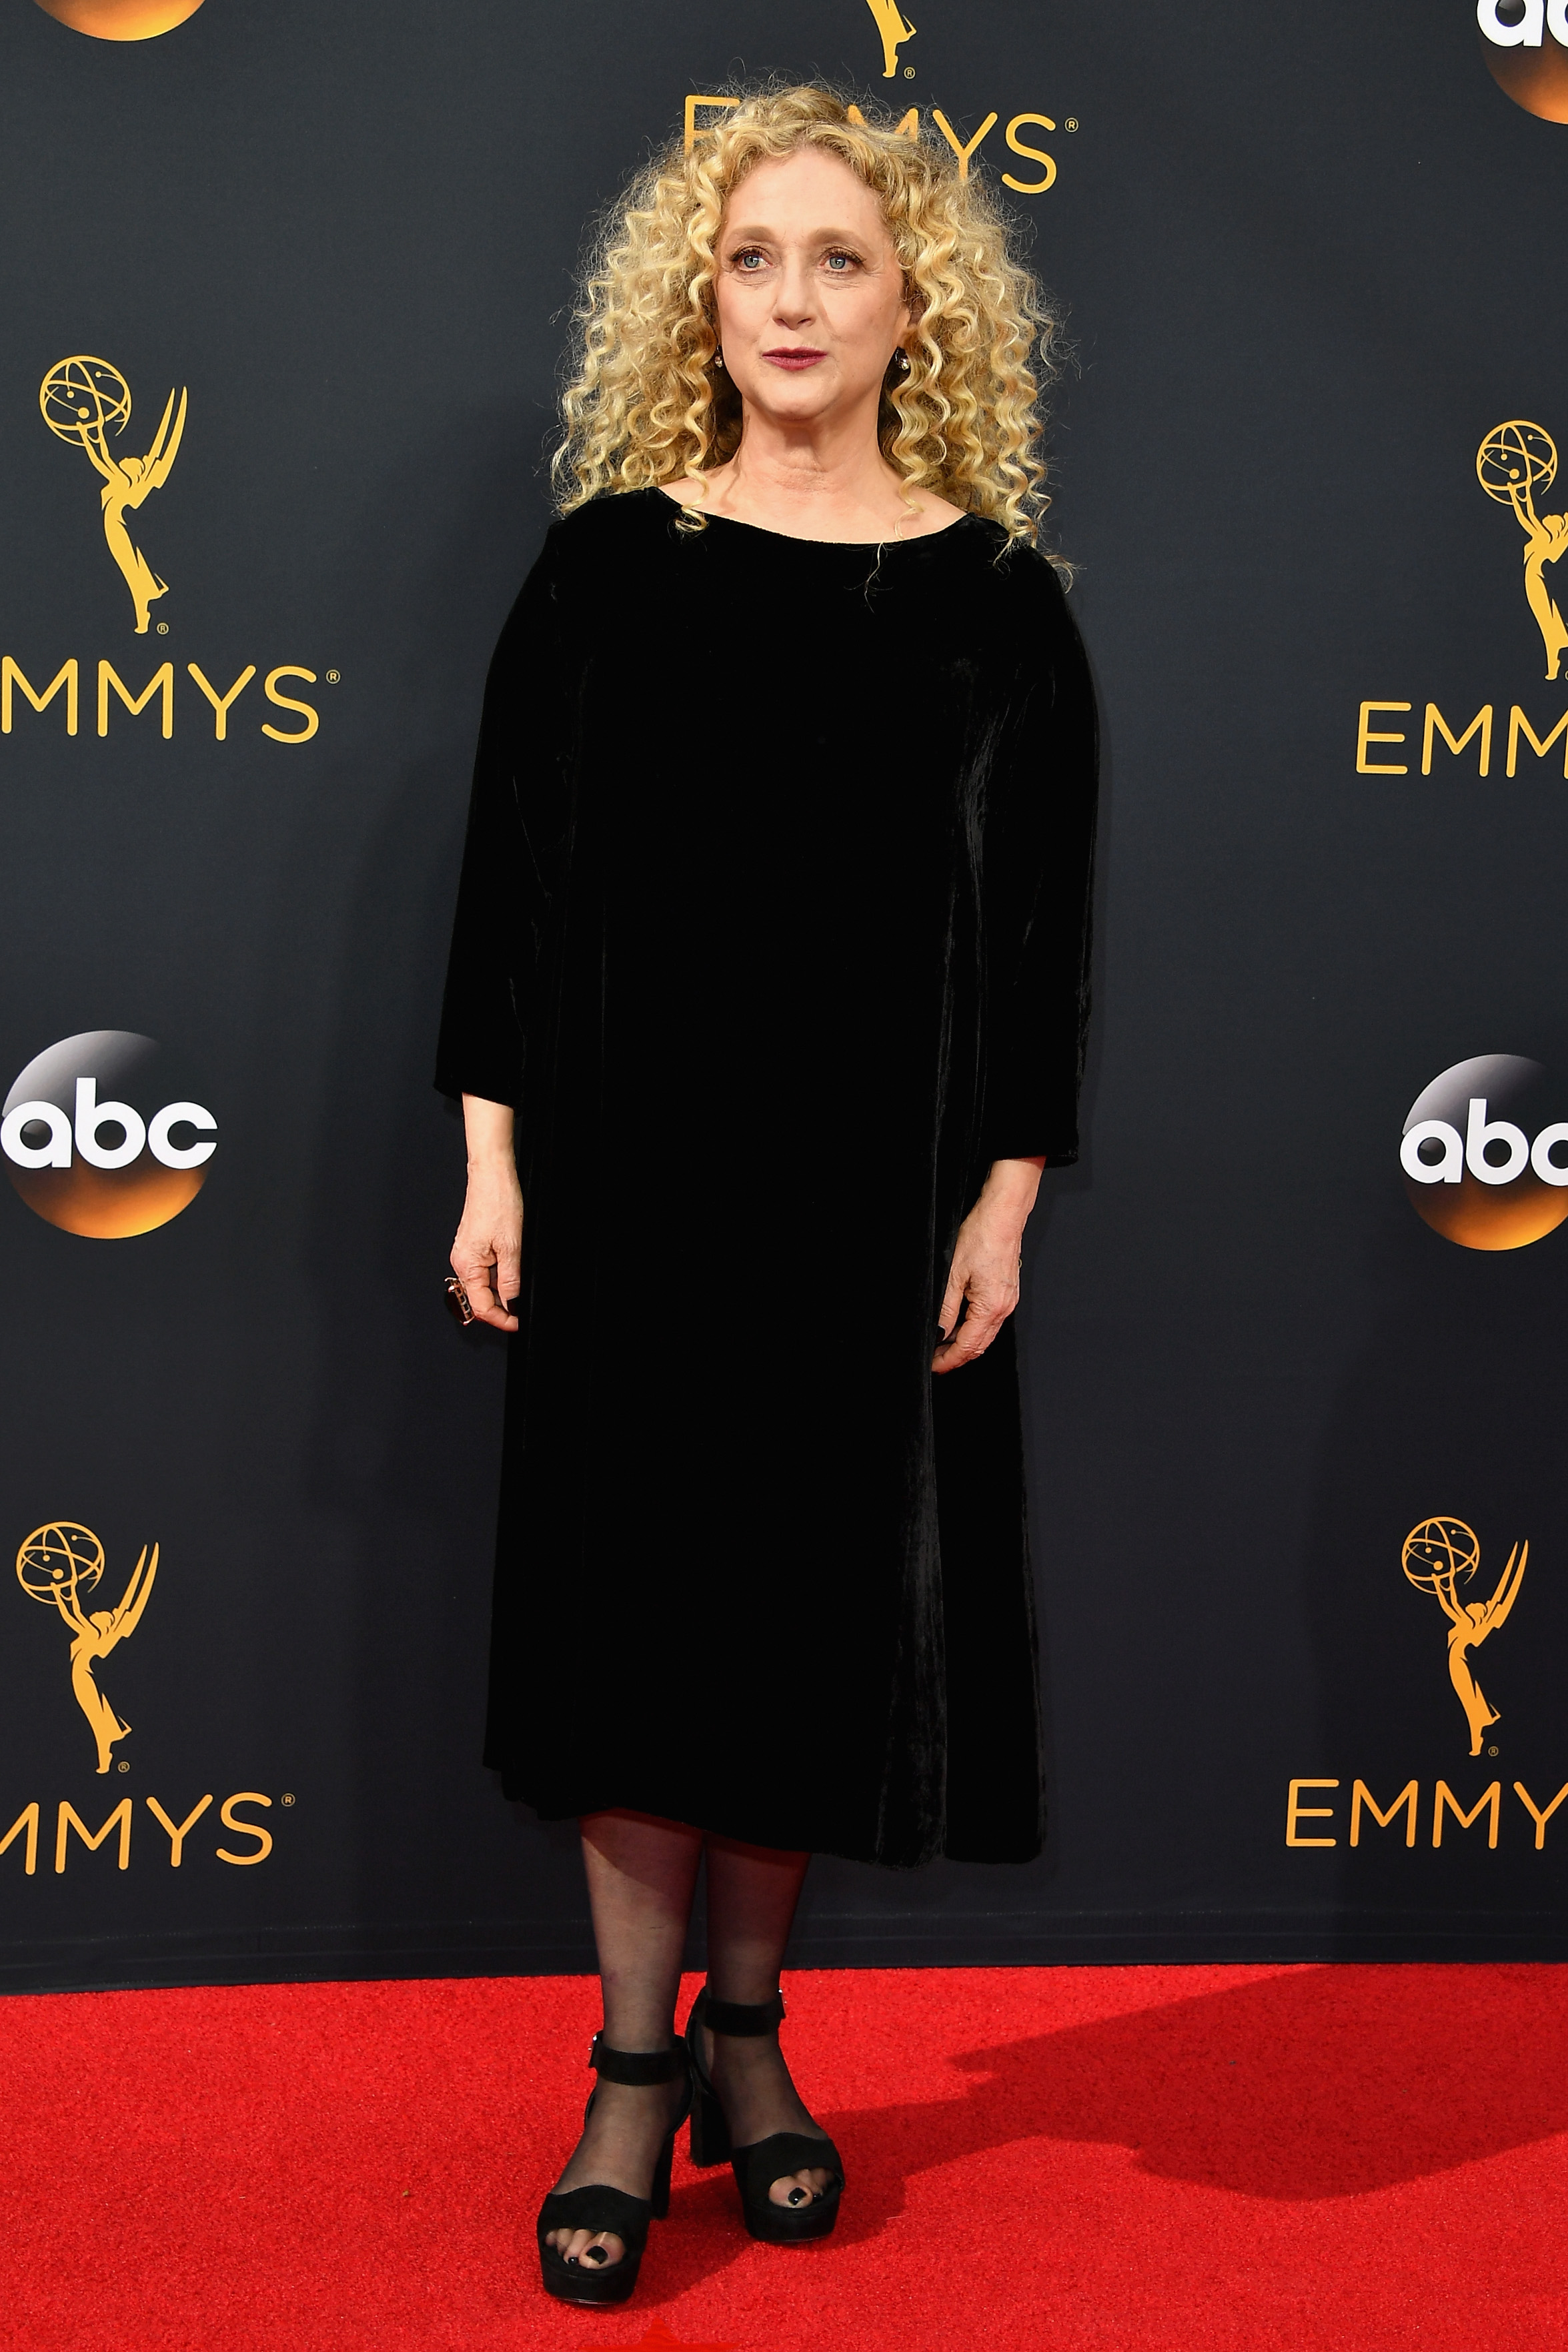 Carol Kane arrives at the 68th Annual Primetime Emmy Awards at Microsoft Theater on Sept. 18, 2016 in Los Angeles.